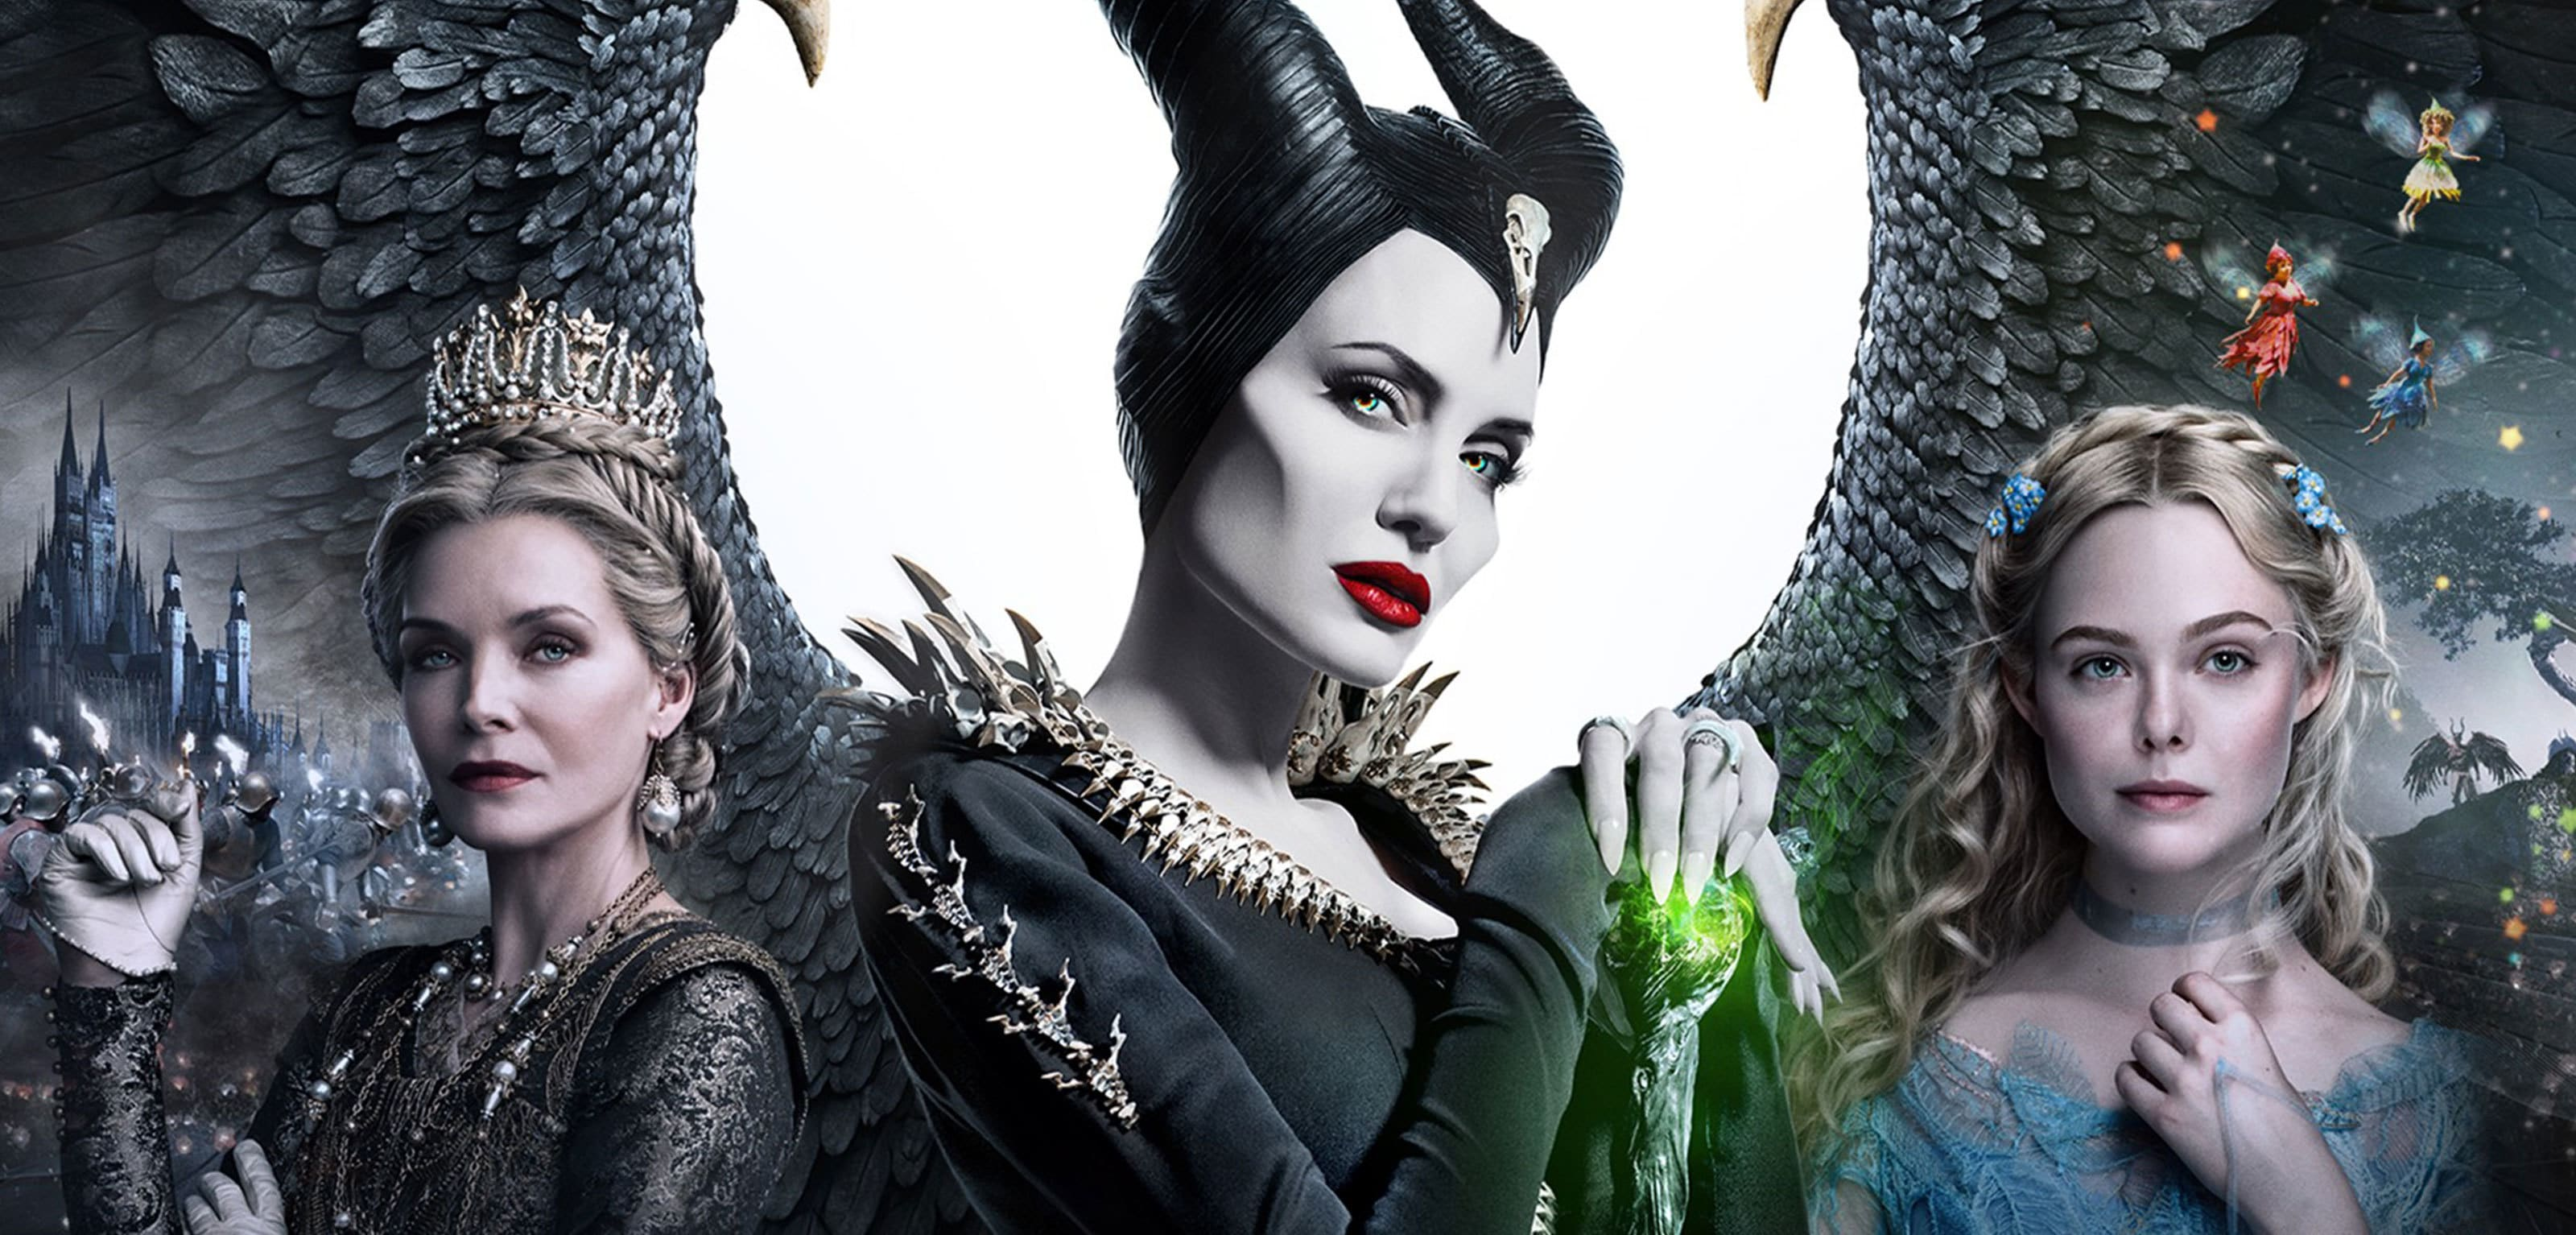 A poster from Maleficent: Mistress of Evil